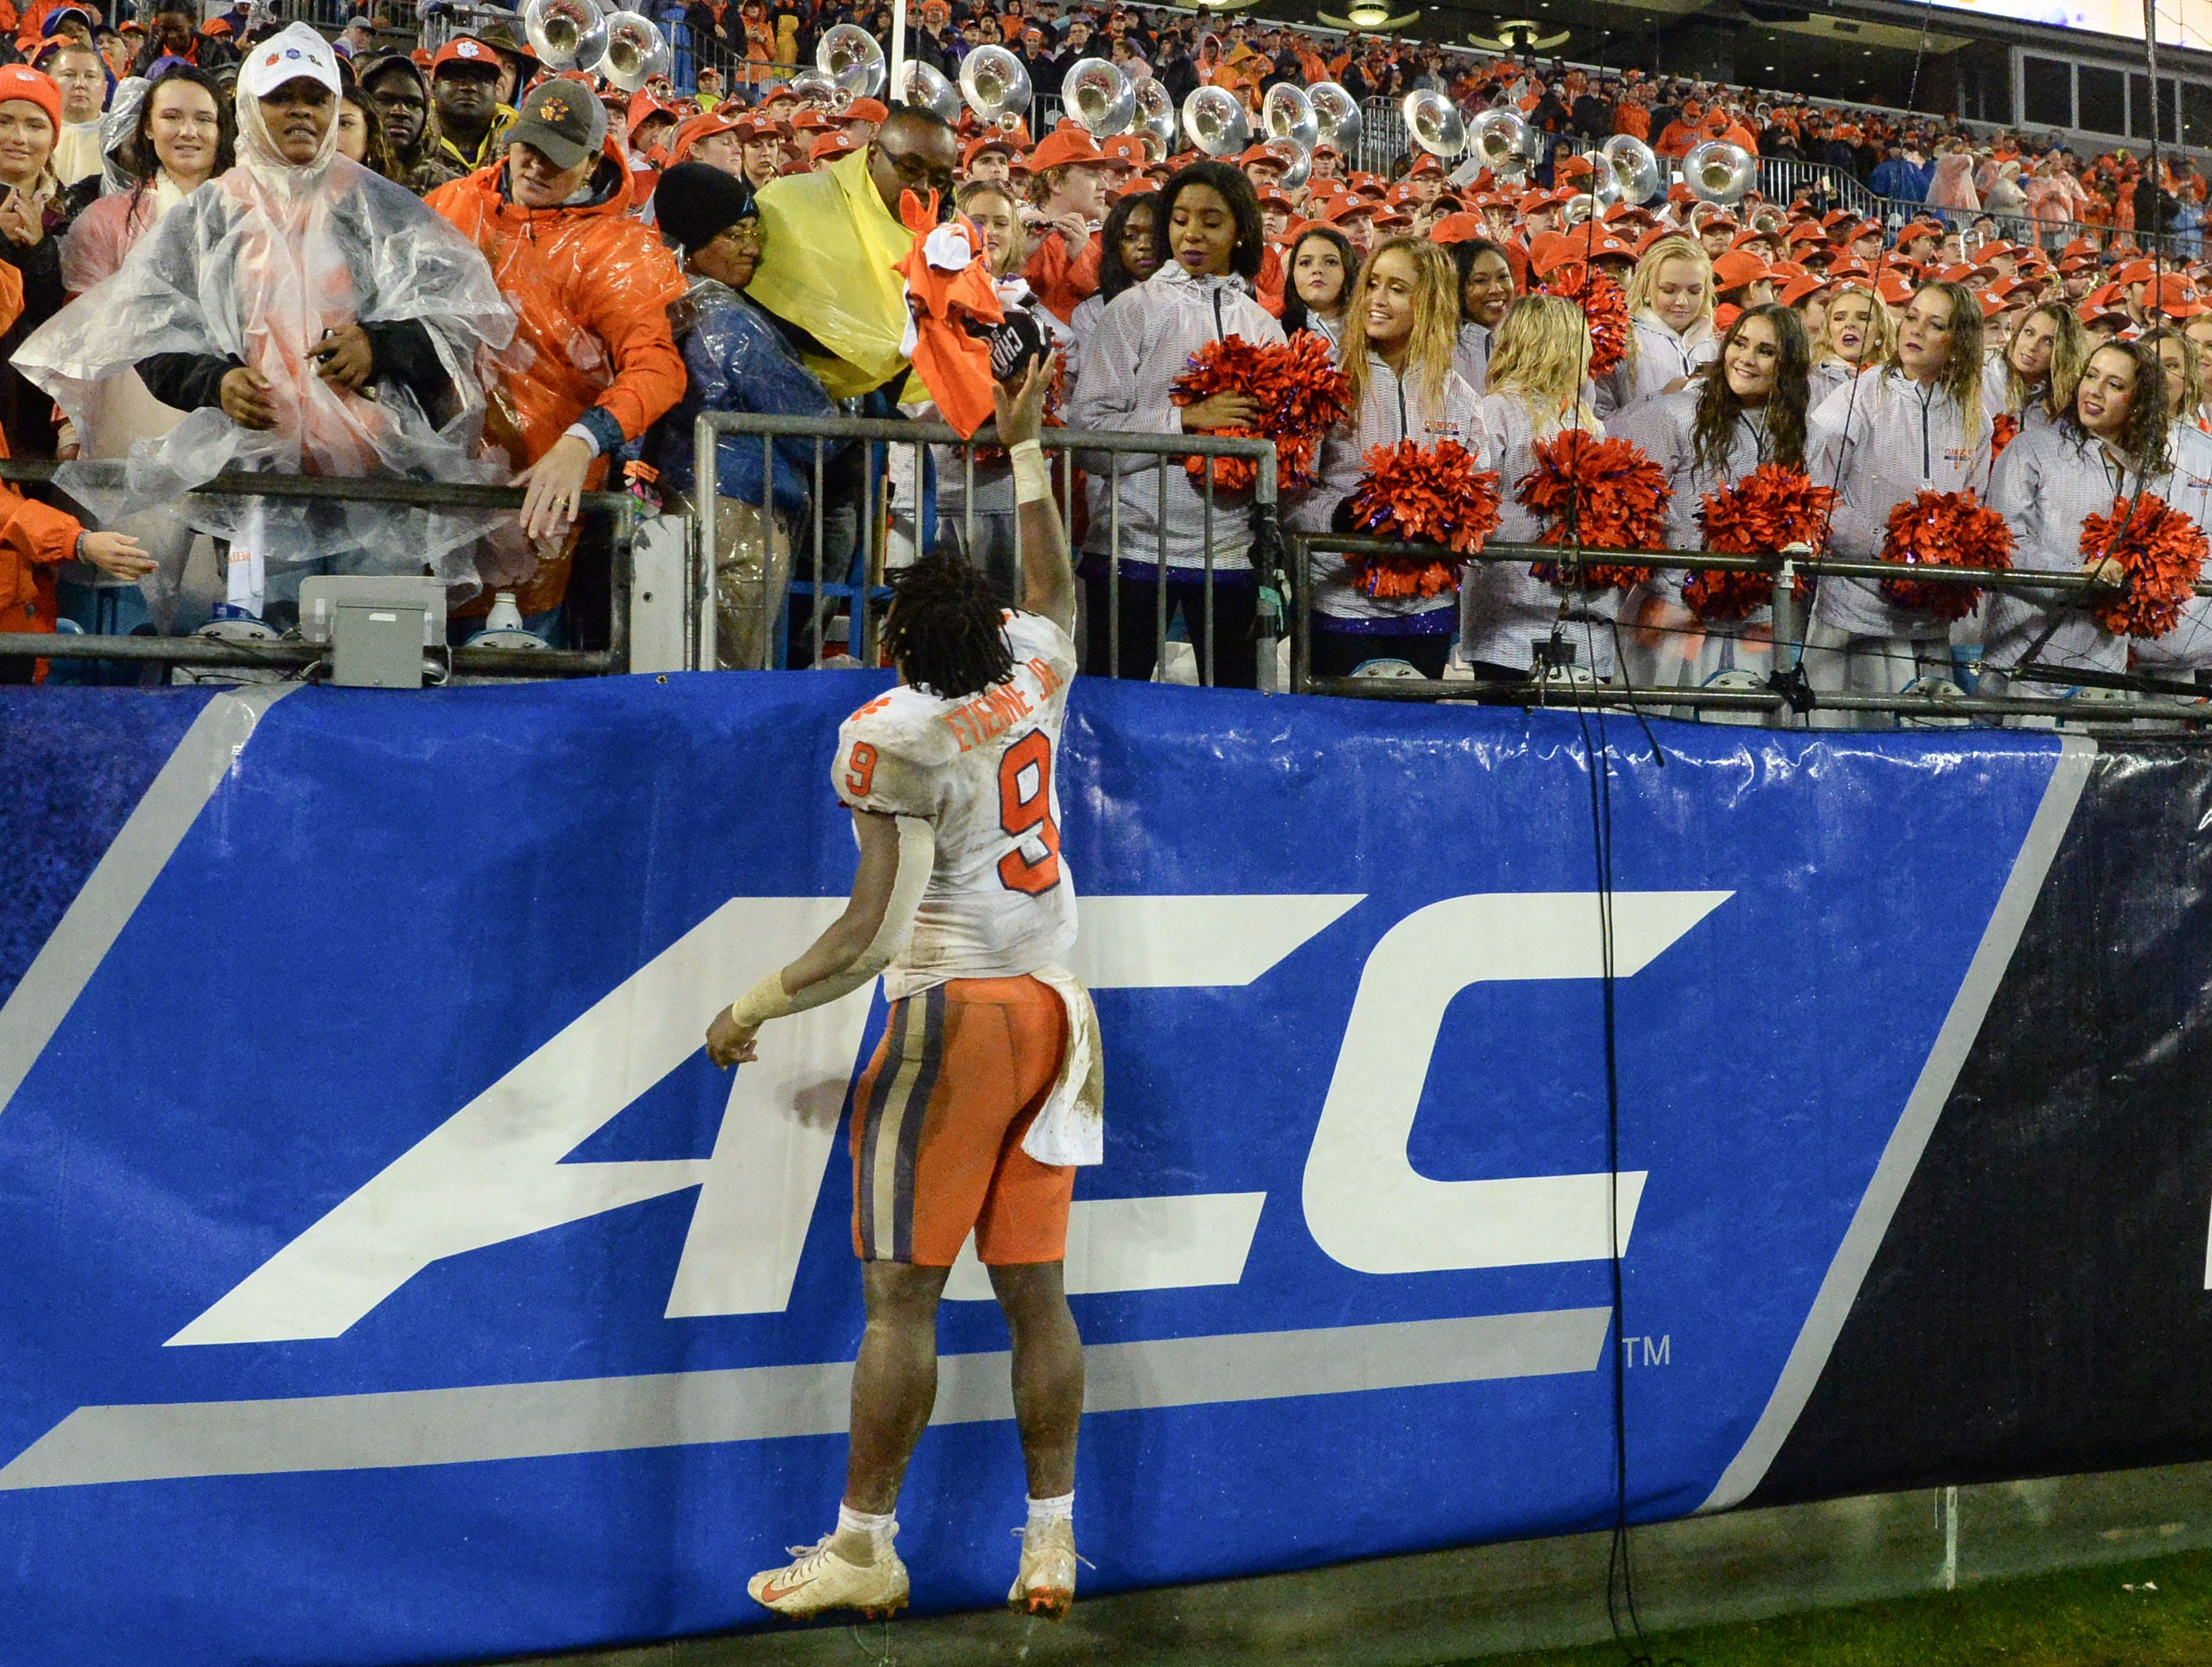 Clemson running back Travis Etienne (9) jumps up with fans after the game at the Dr. Pepper ACC football championship at Bank of America Stadium in Charlotte, N.C. on Saturday, December 1, 2018.